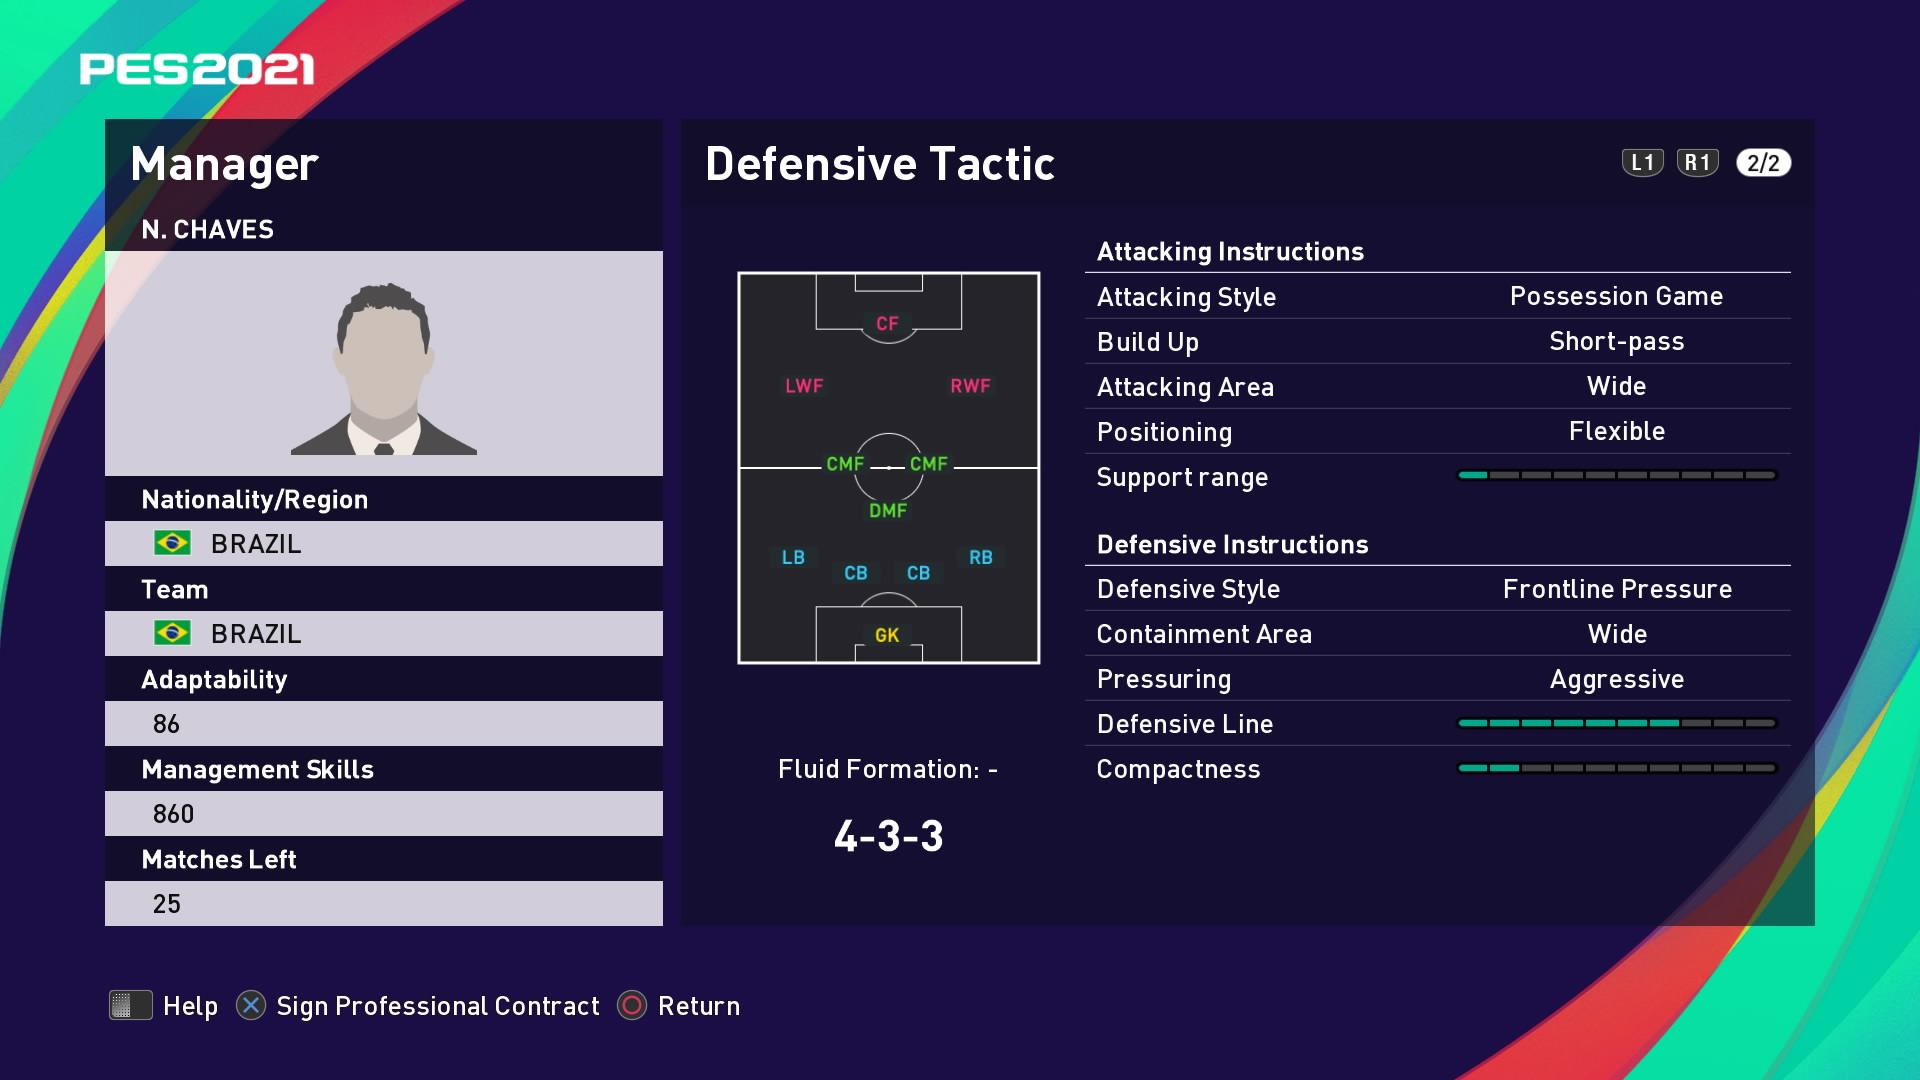 N. Chaves (Tite) Defensive Tactic in PES 2021 myClub